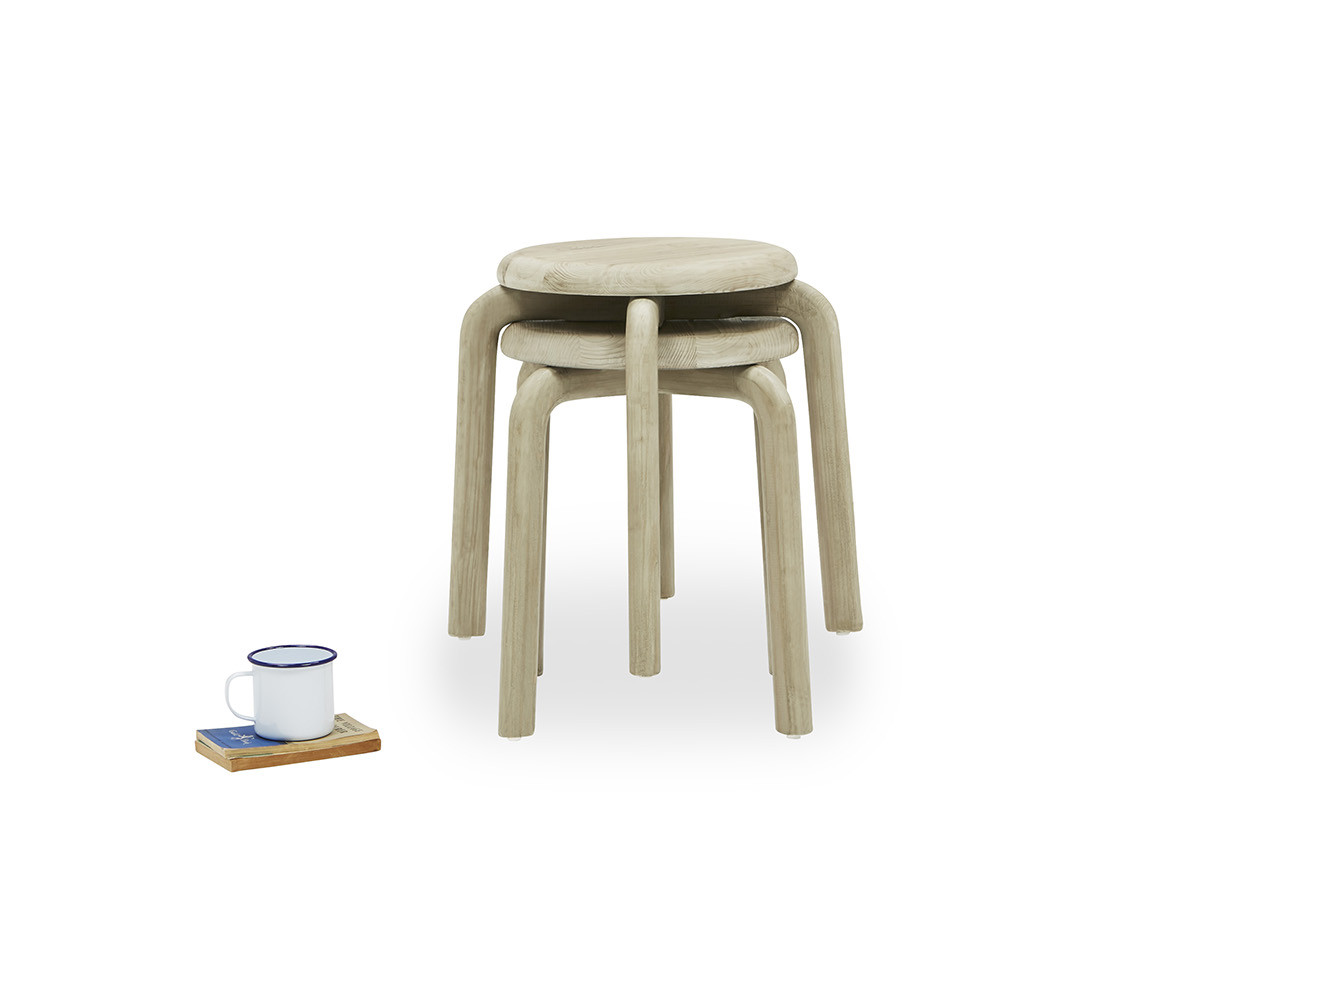 Pleasant Pair Of Stacker Stools Ncnpc Chair Design For Home Ncnpcorg